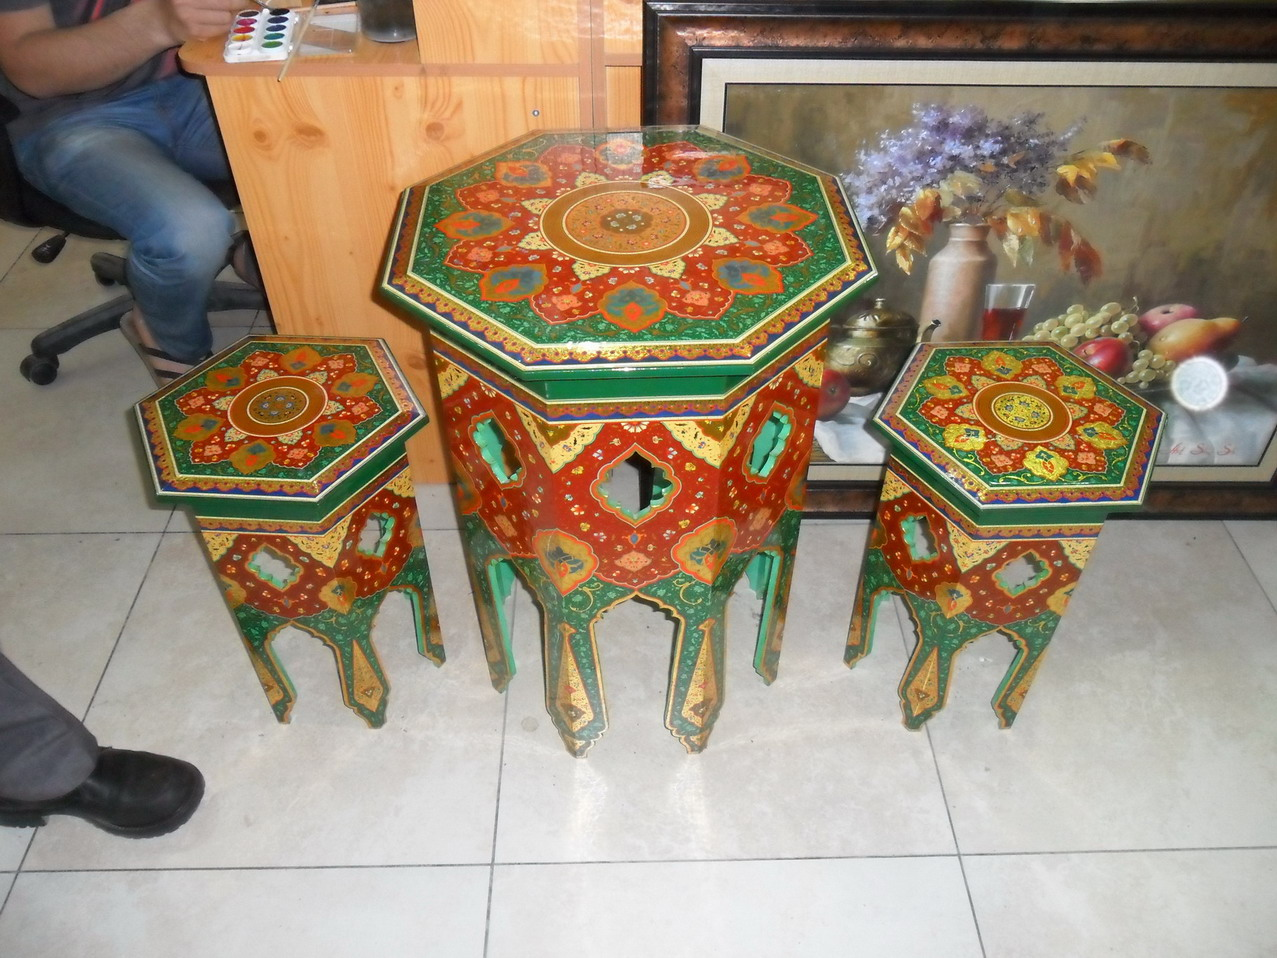 Ornate hand-made furniture